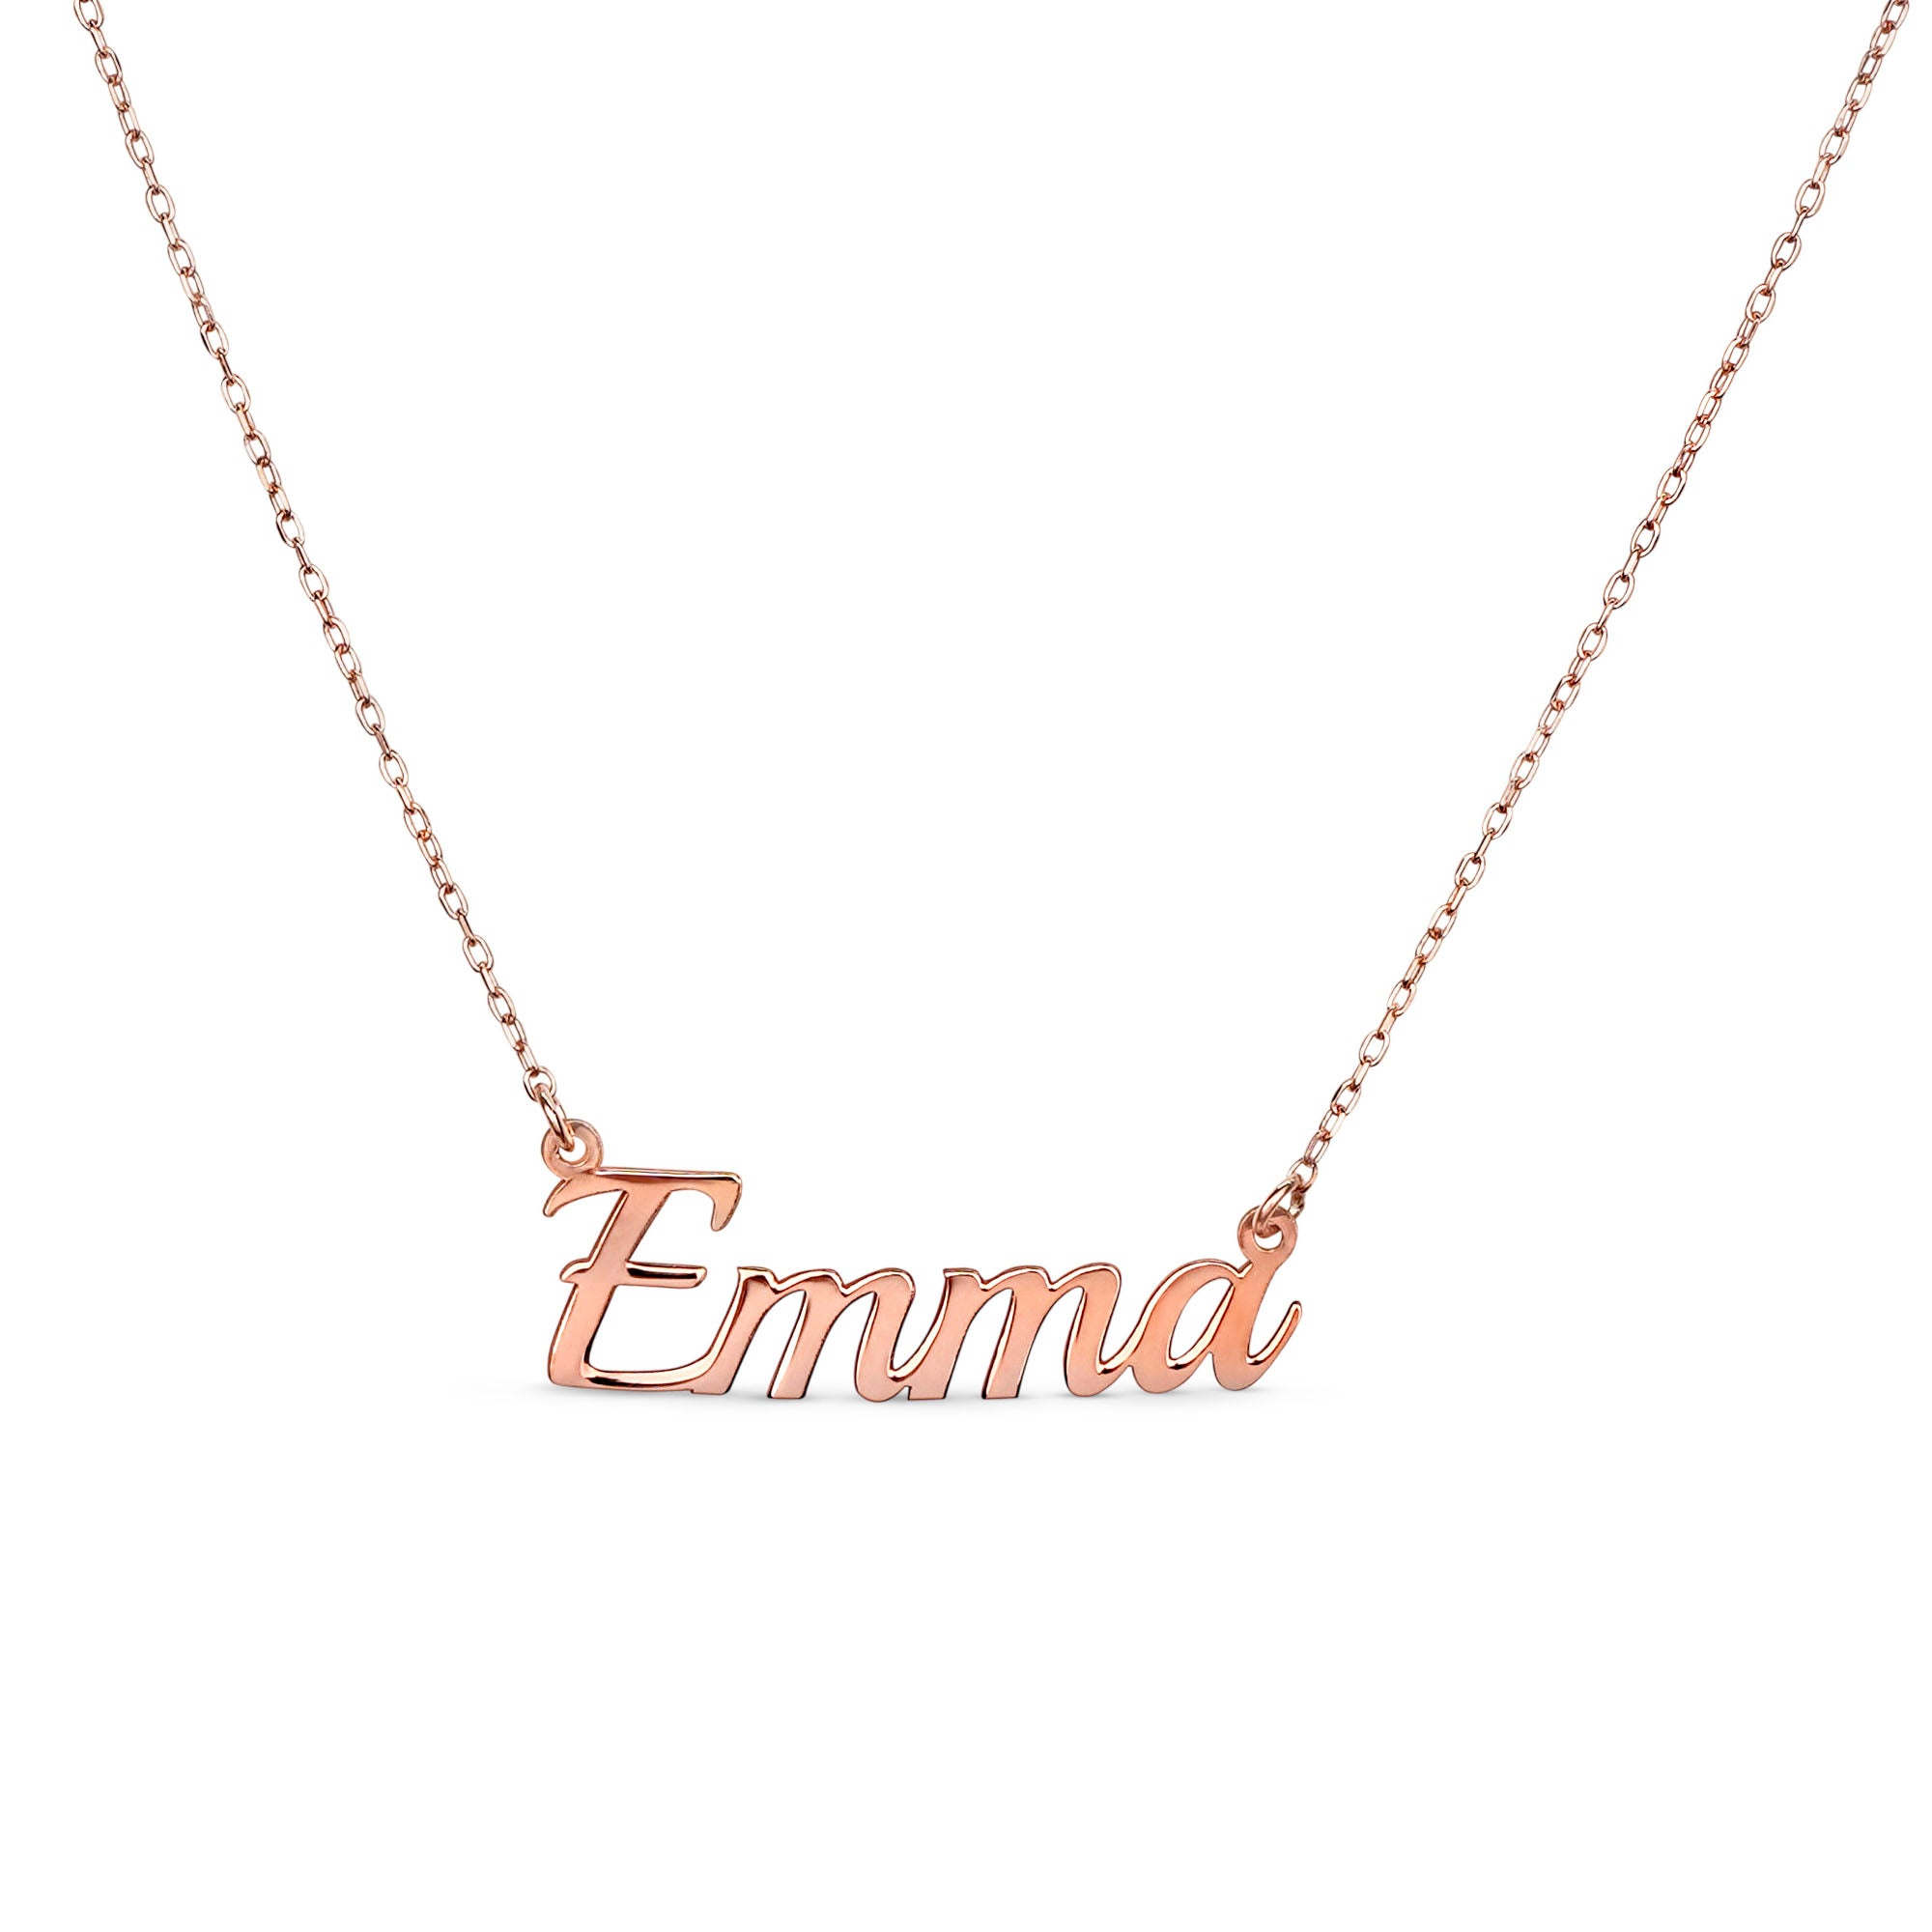 Allura Name Necklace